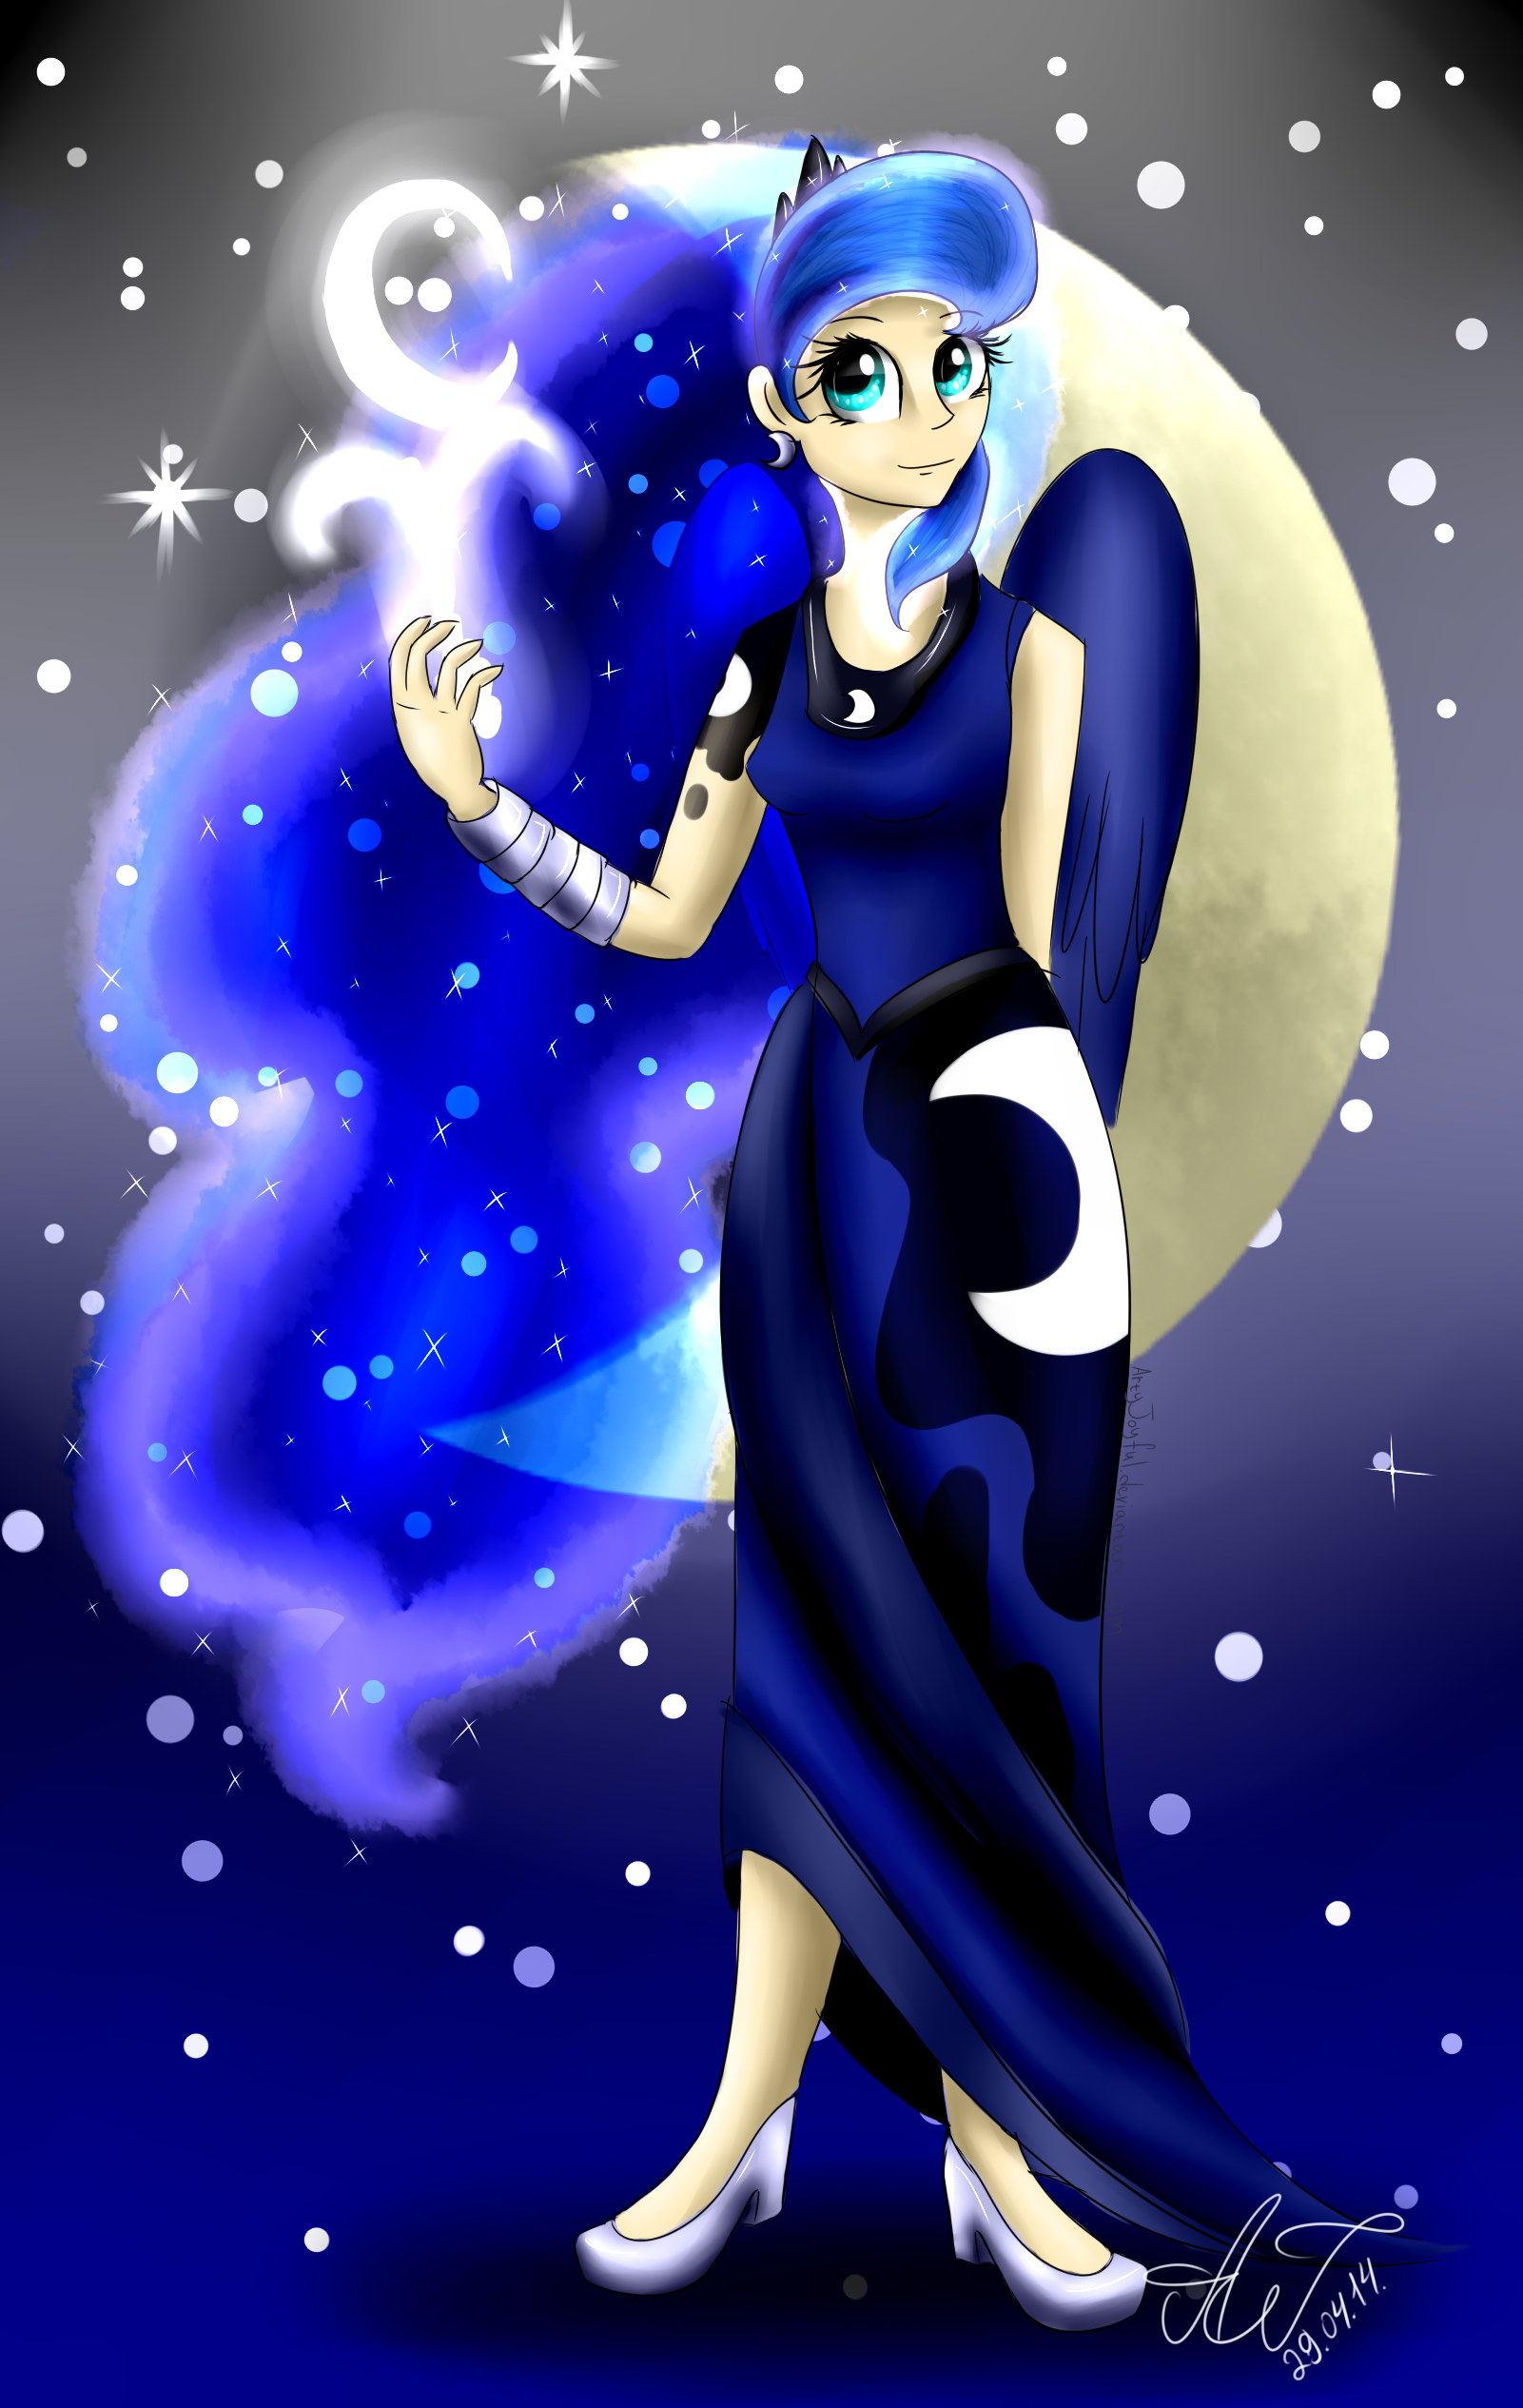 Princess Luna (human) By ArtyJoyful On DeviantArt